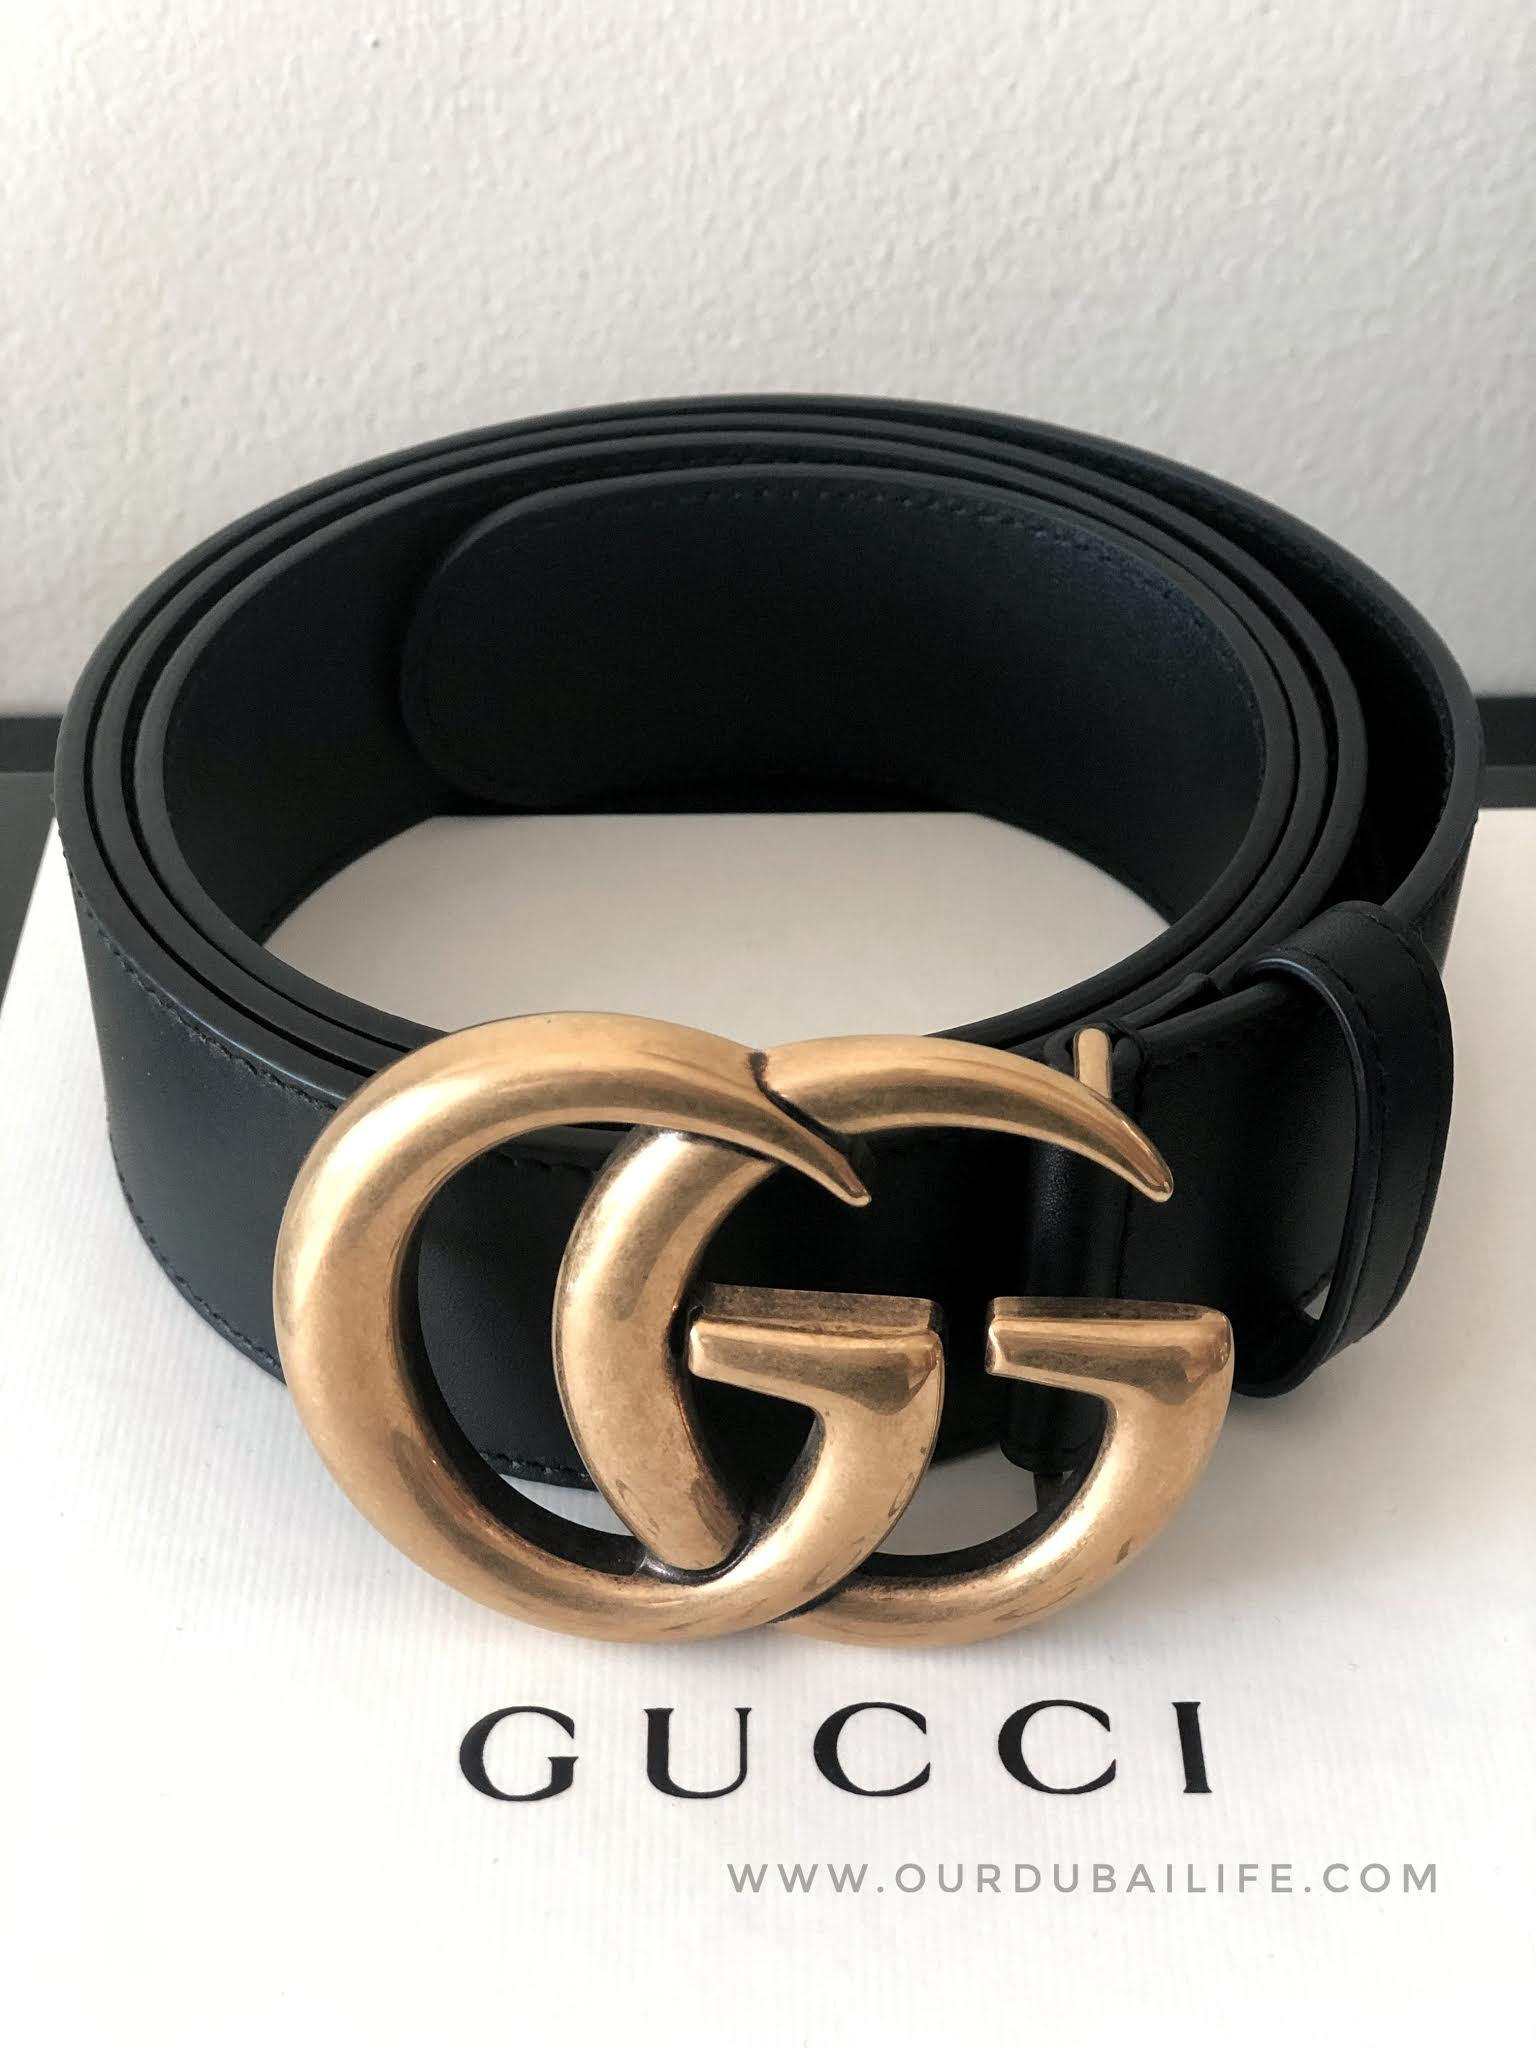 GUCCI black belt with gold large buckle